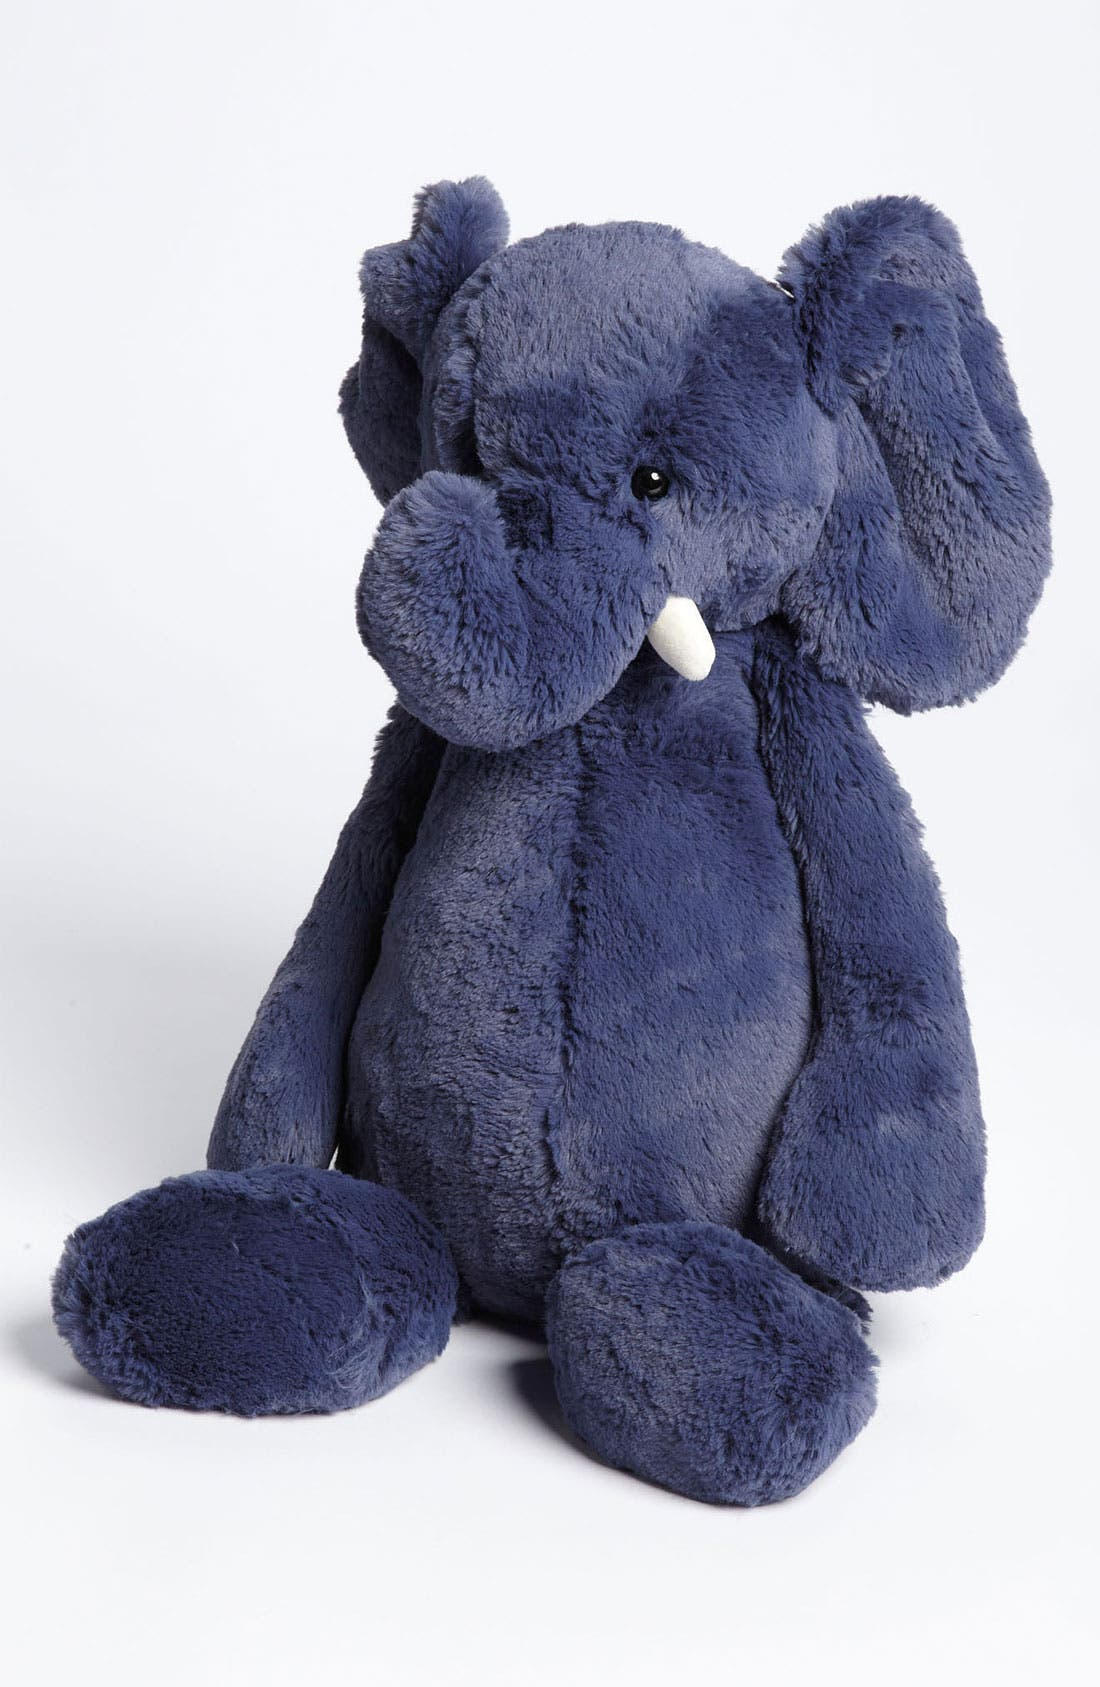 Main Image - Jellycat 'Bashful Elephant' Stuffed Animal